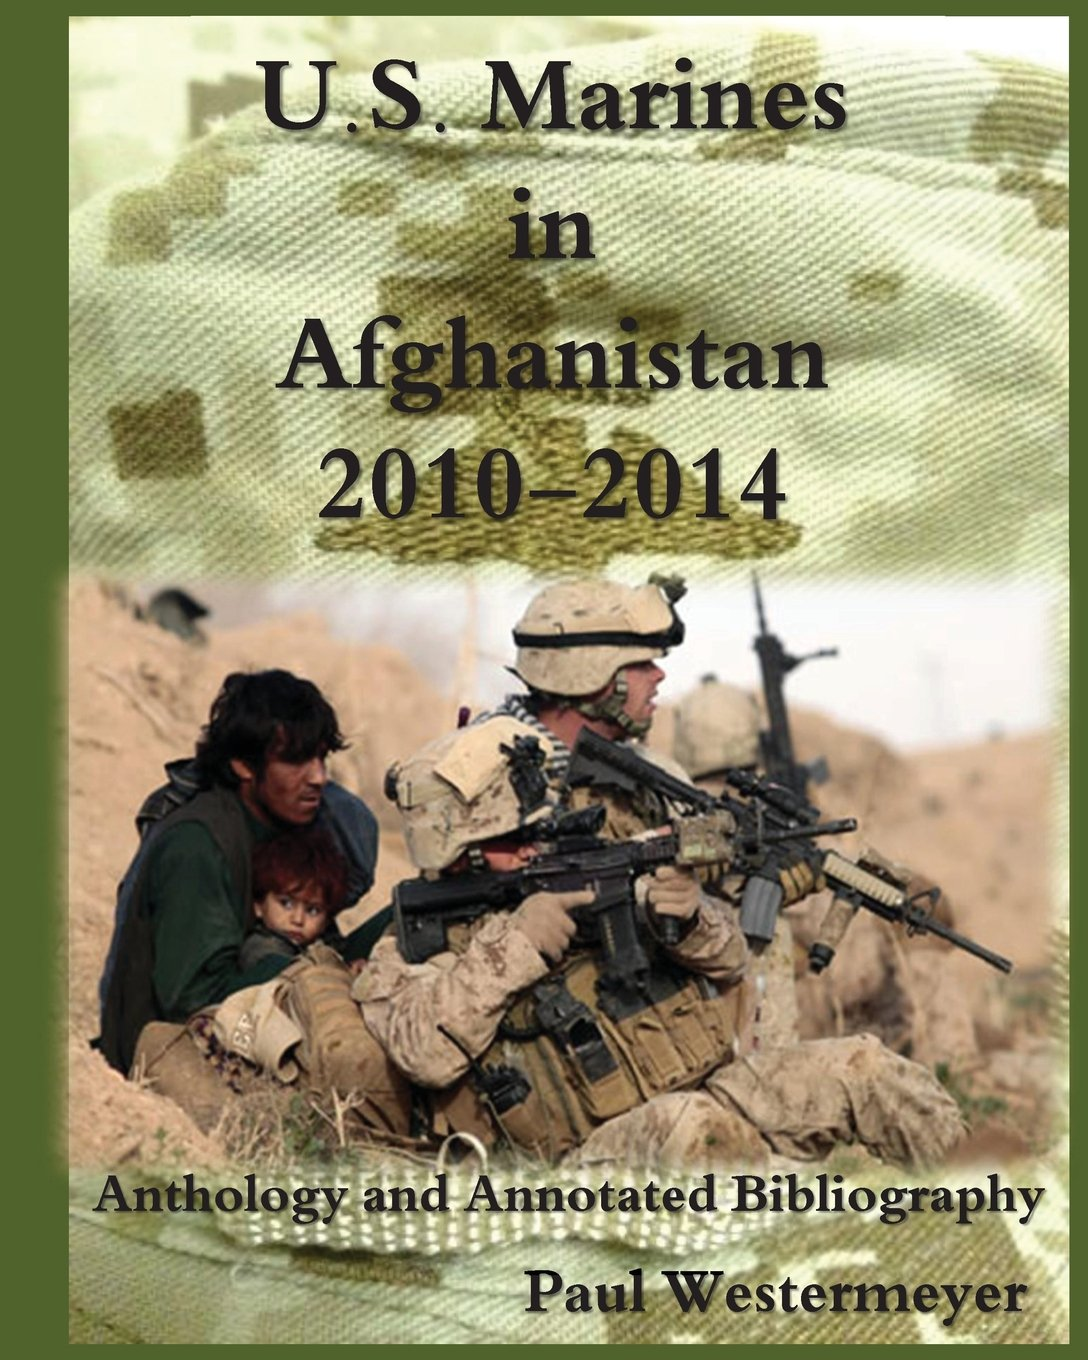 U.S. Marines in Afghanistan, 2010-2014: Anthology and Annotated Bibliography